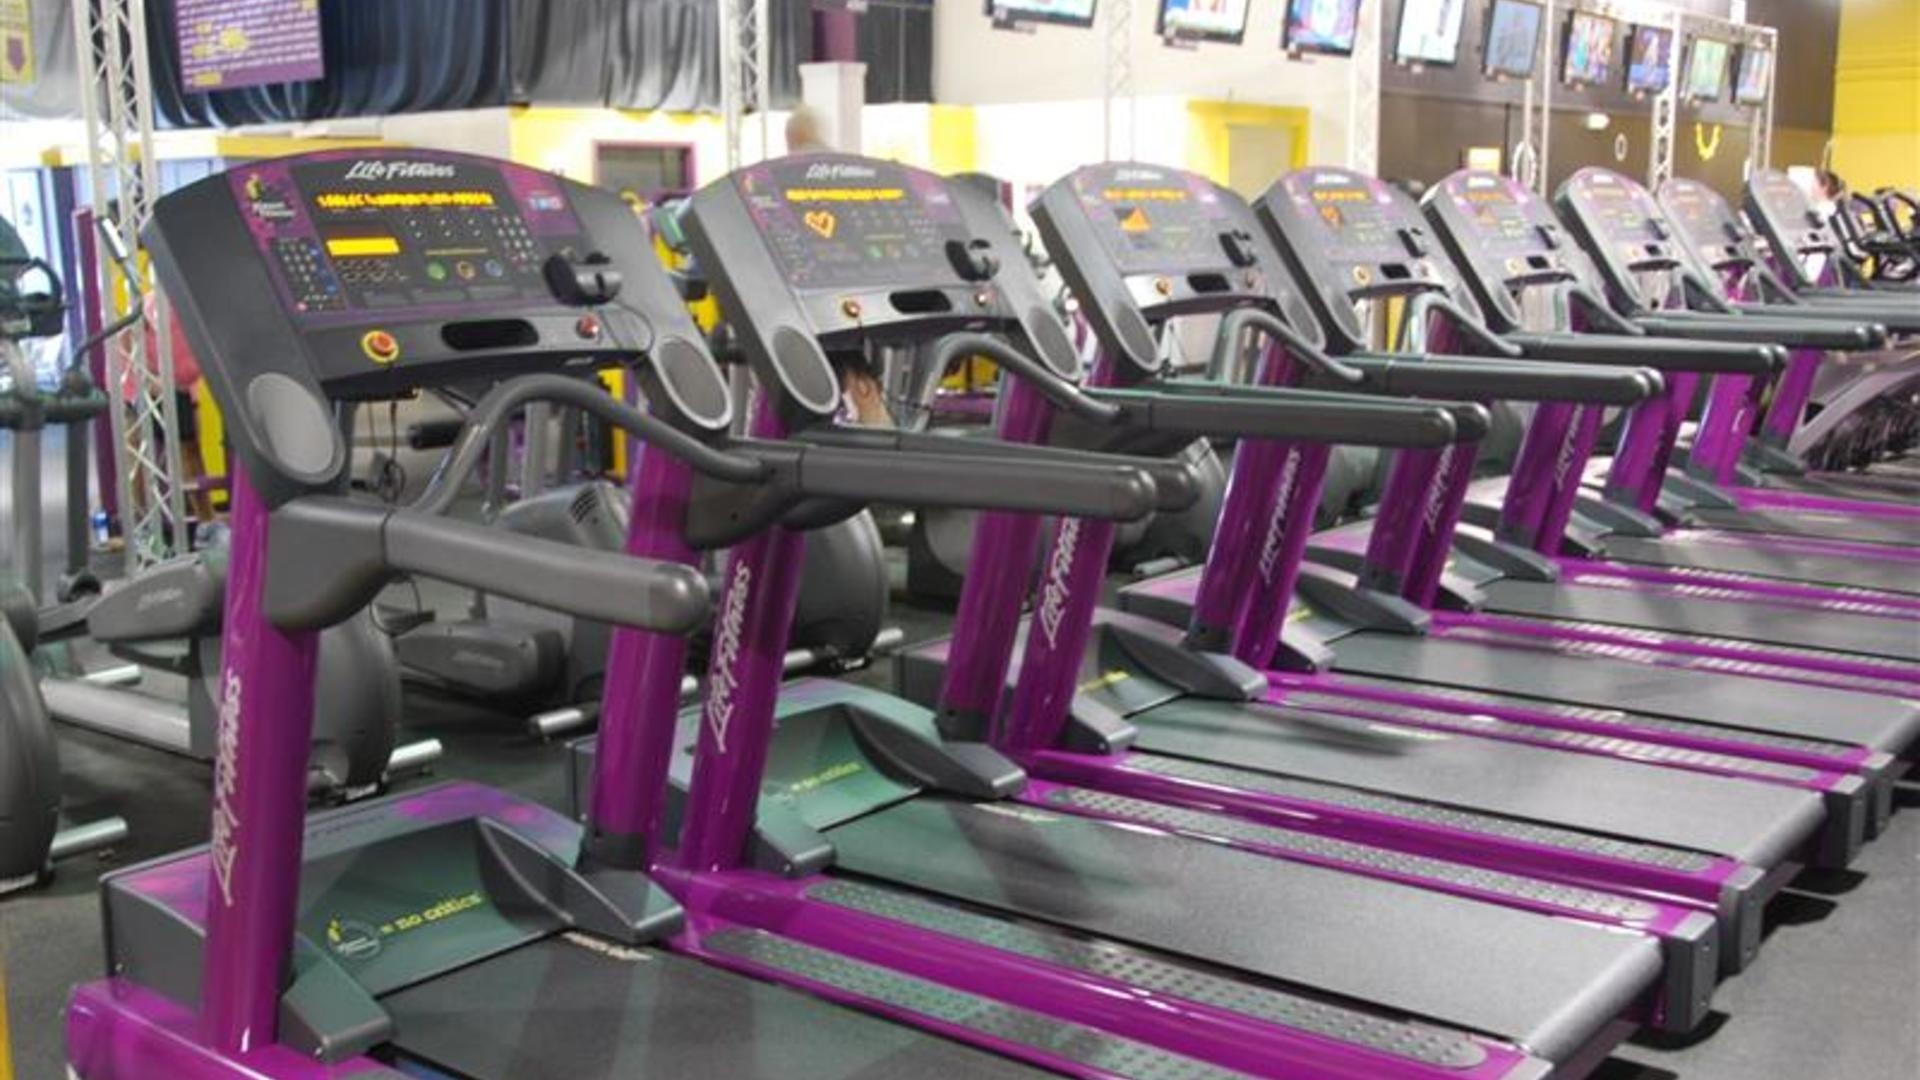 Police: Naked man arrested at Planet Fitness said he